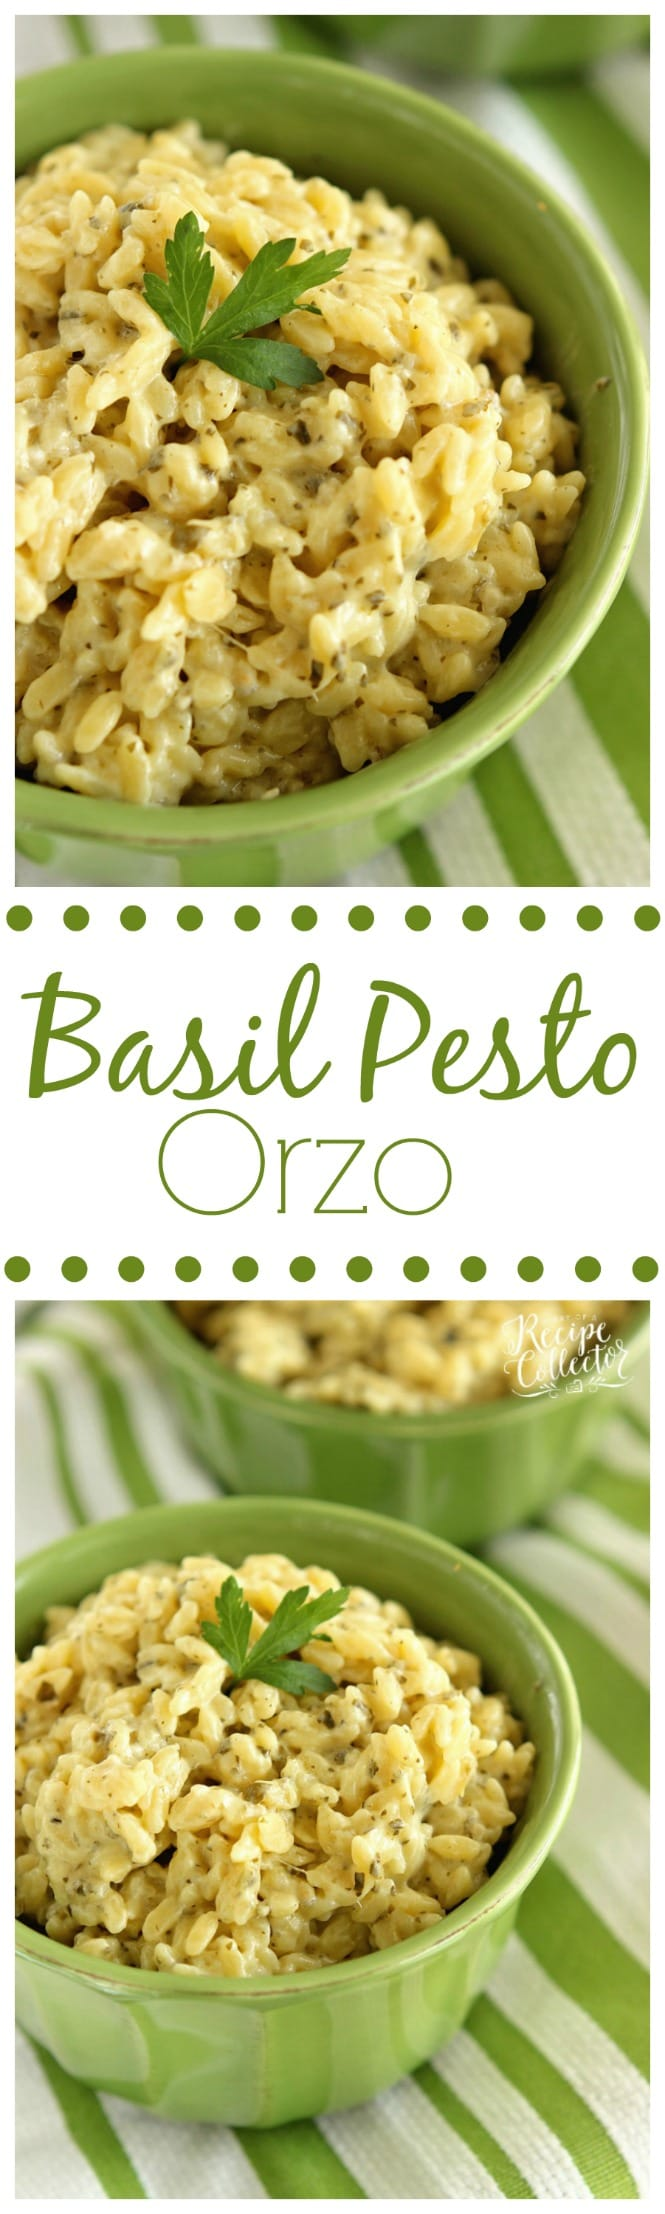 Basil Pesto Orzo - A quick and easy side dish made with only 4 ingredients! Plus it can be made gluten free too!